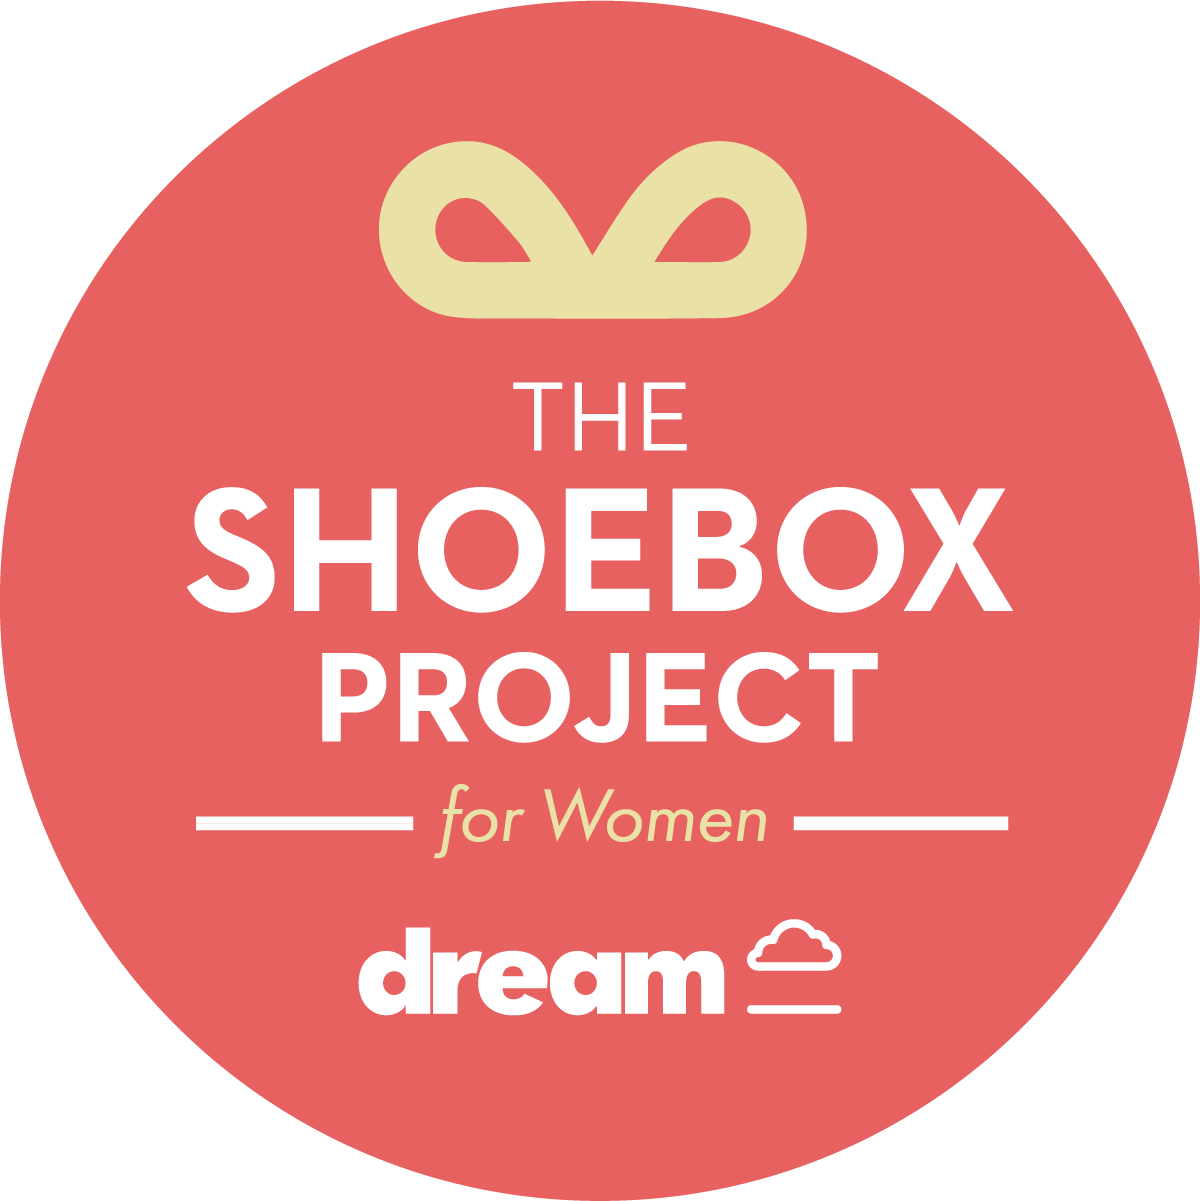 The Shoebox Project for Women Logo